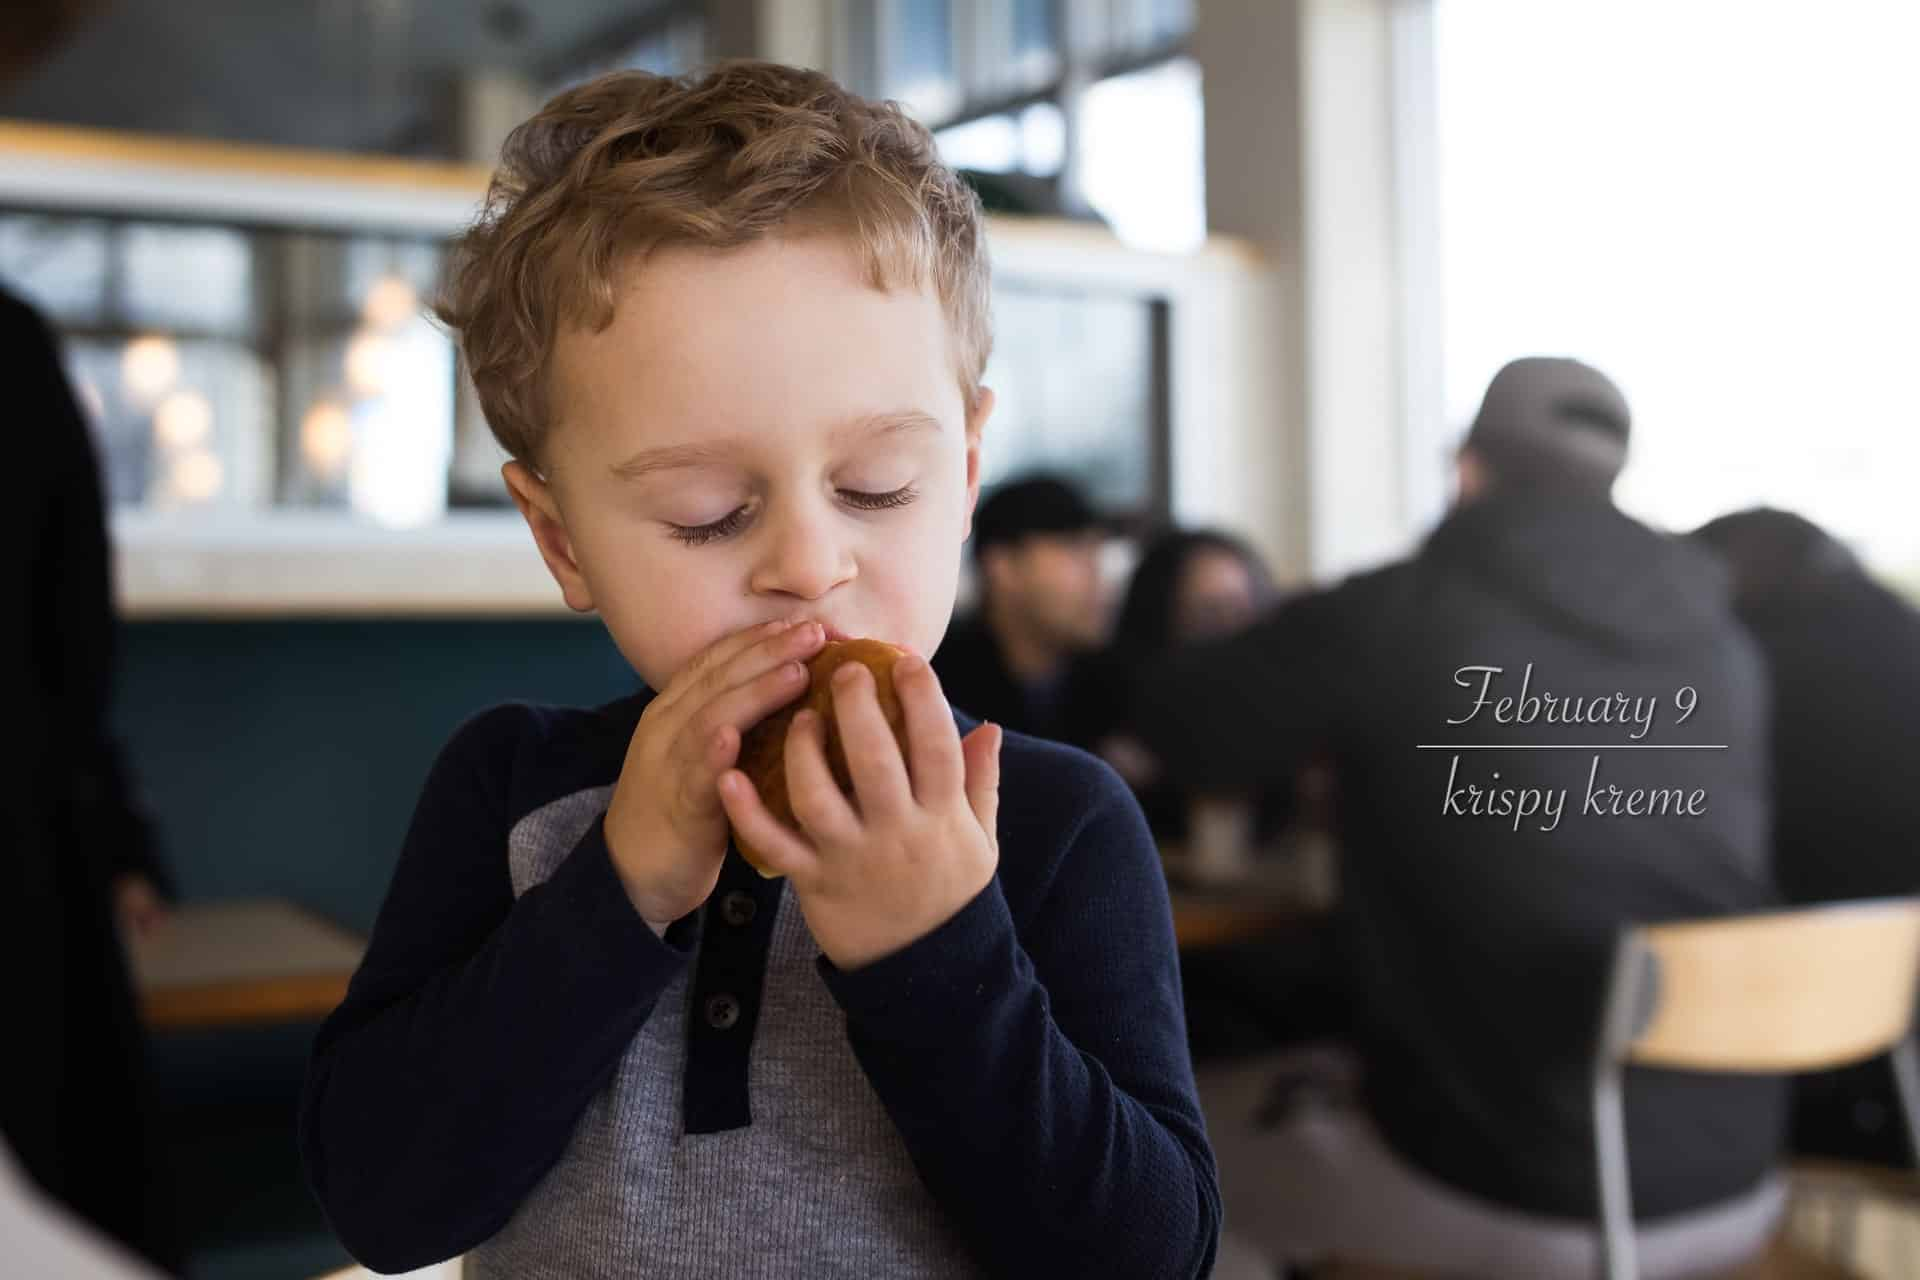 toddler boy with eyes closed taking a big bite of a krispy kreme donut